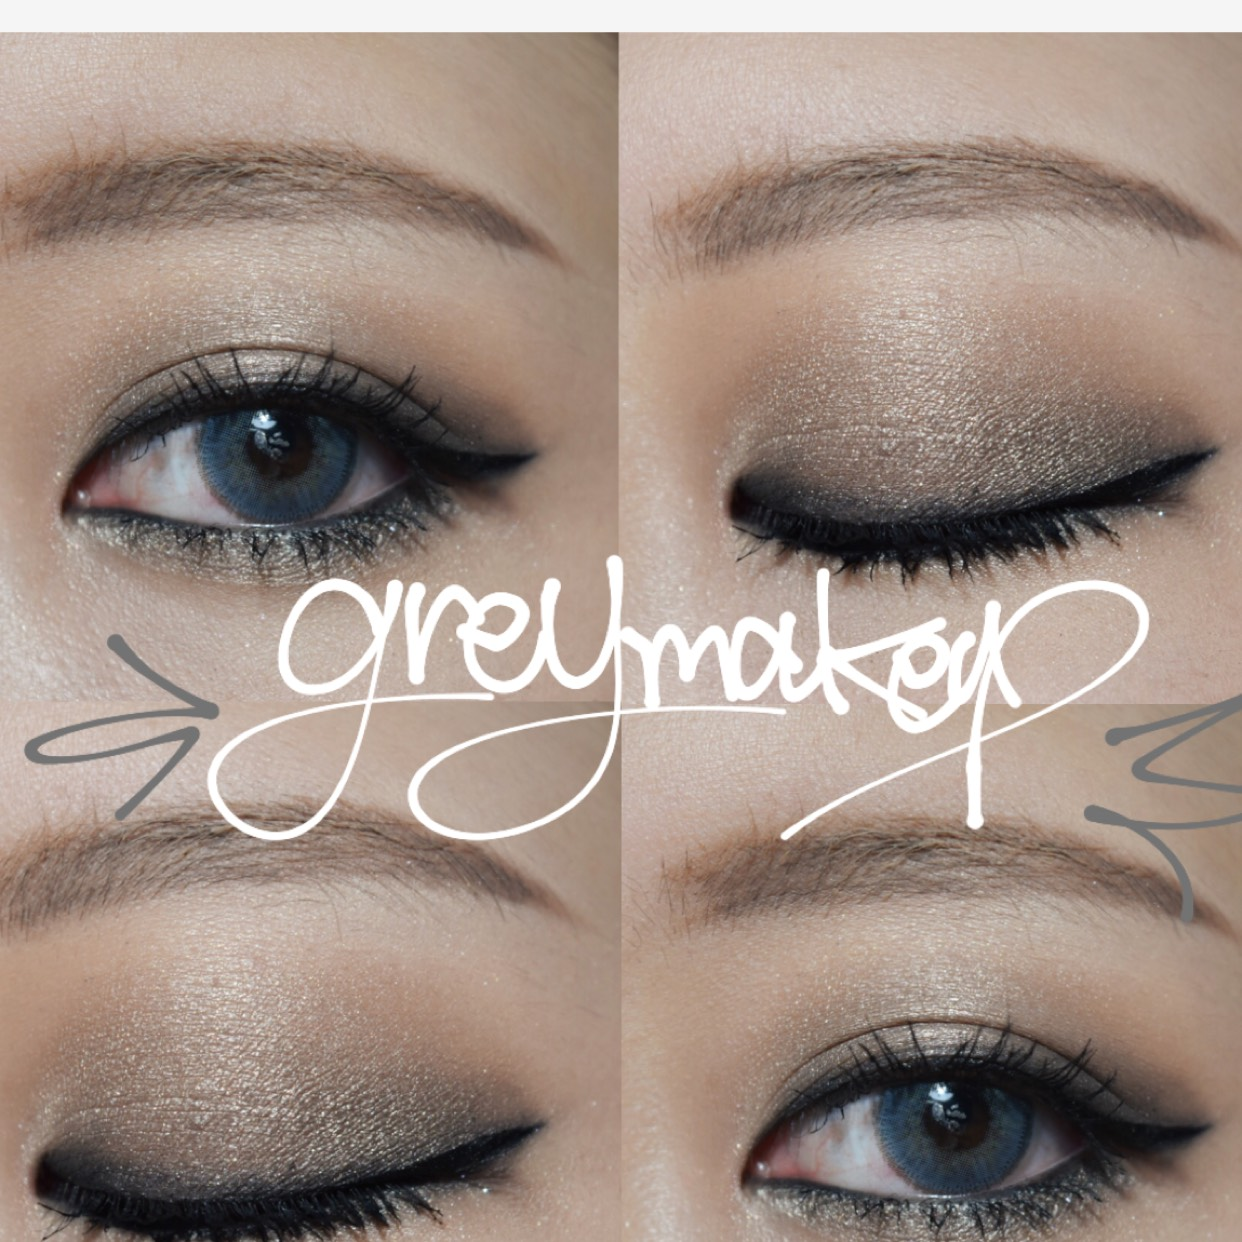 cool greycollar makeup